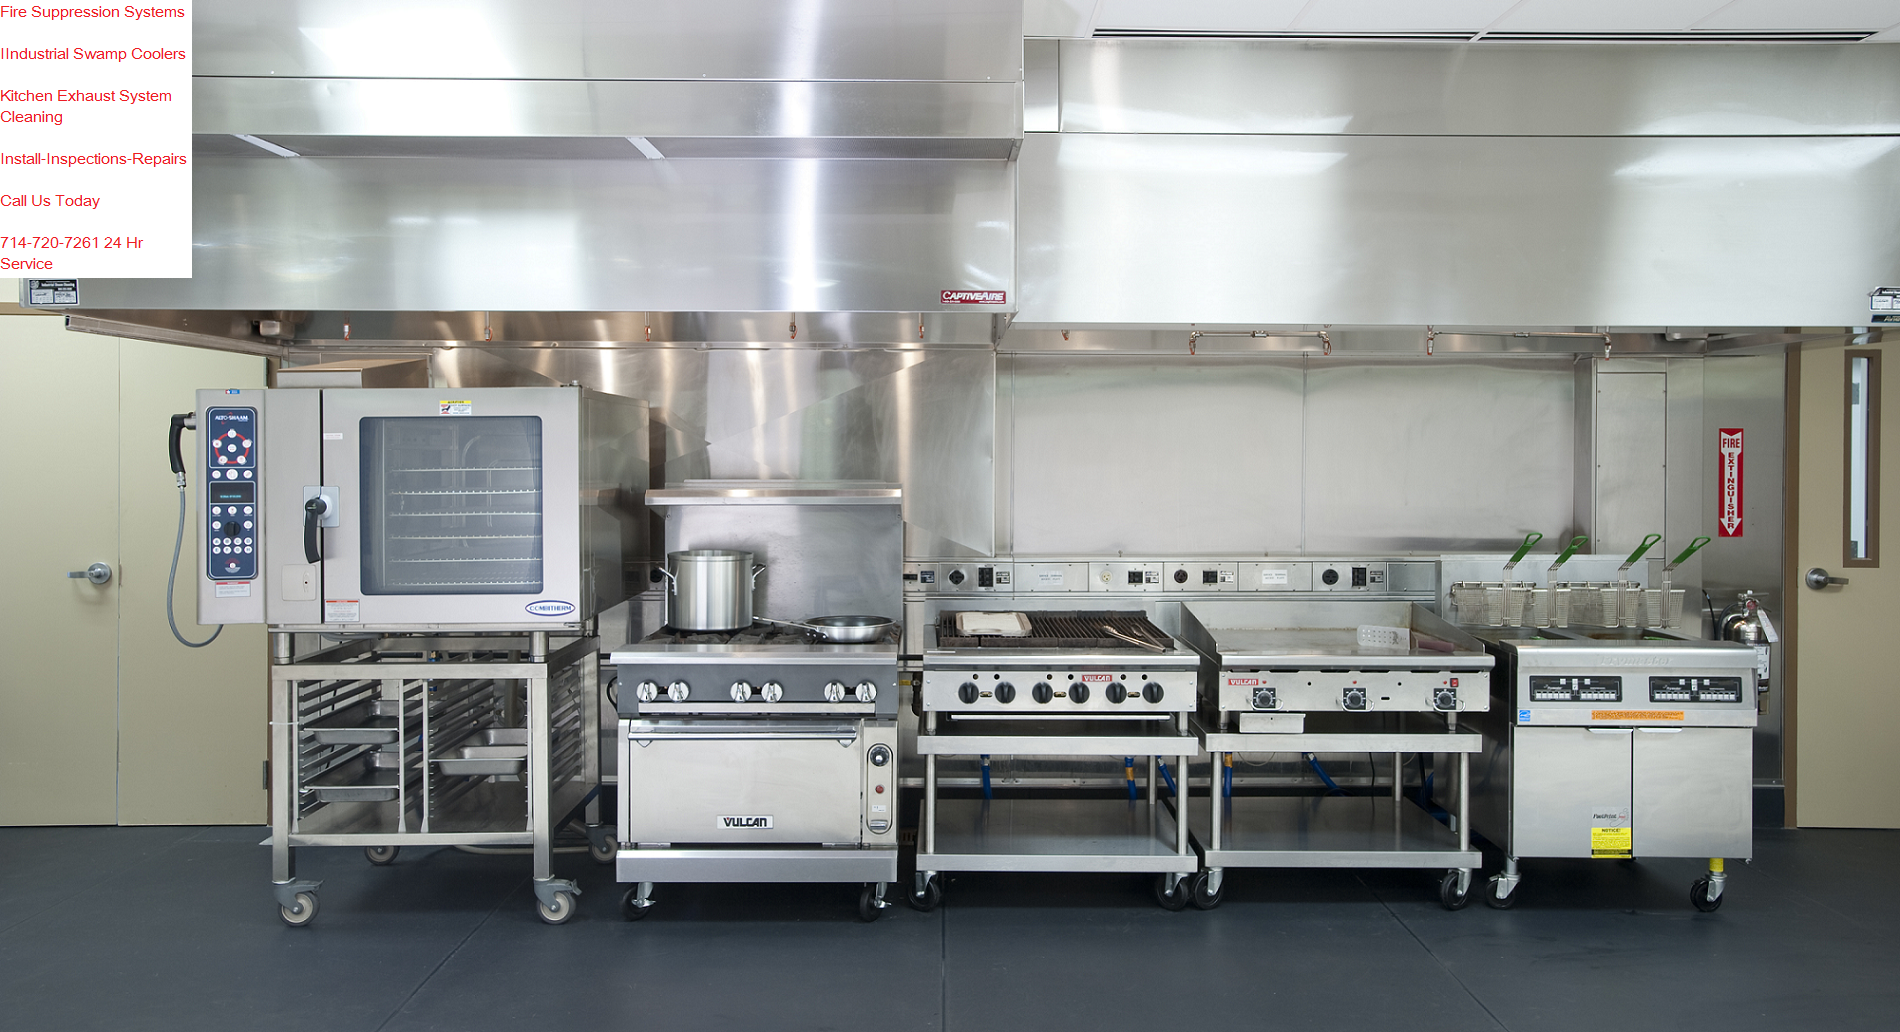 Restaurant Kitchen Ventilation drs hoods 386-225-5915 | drs hoods uses proven methods for